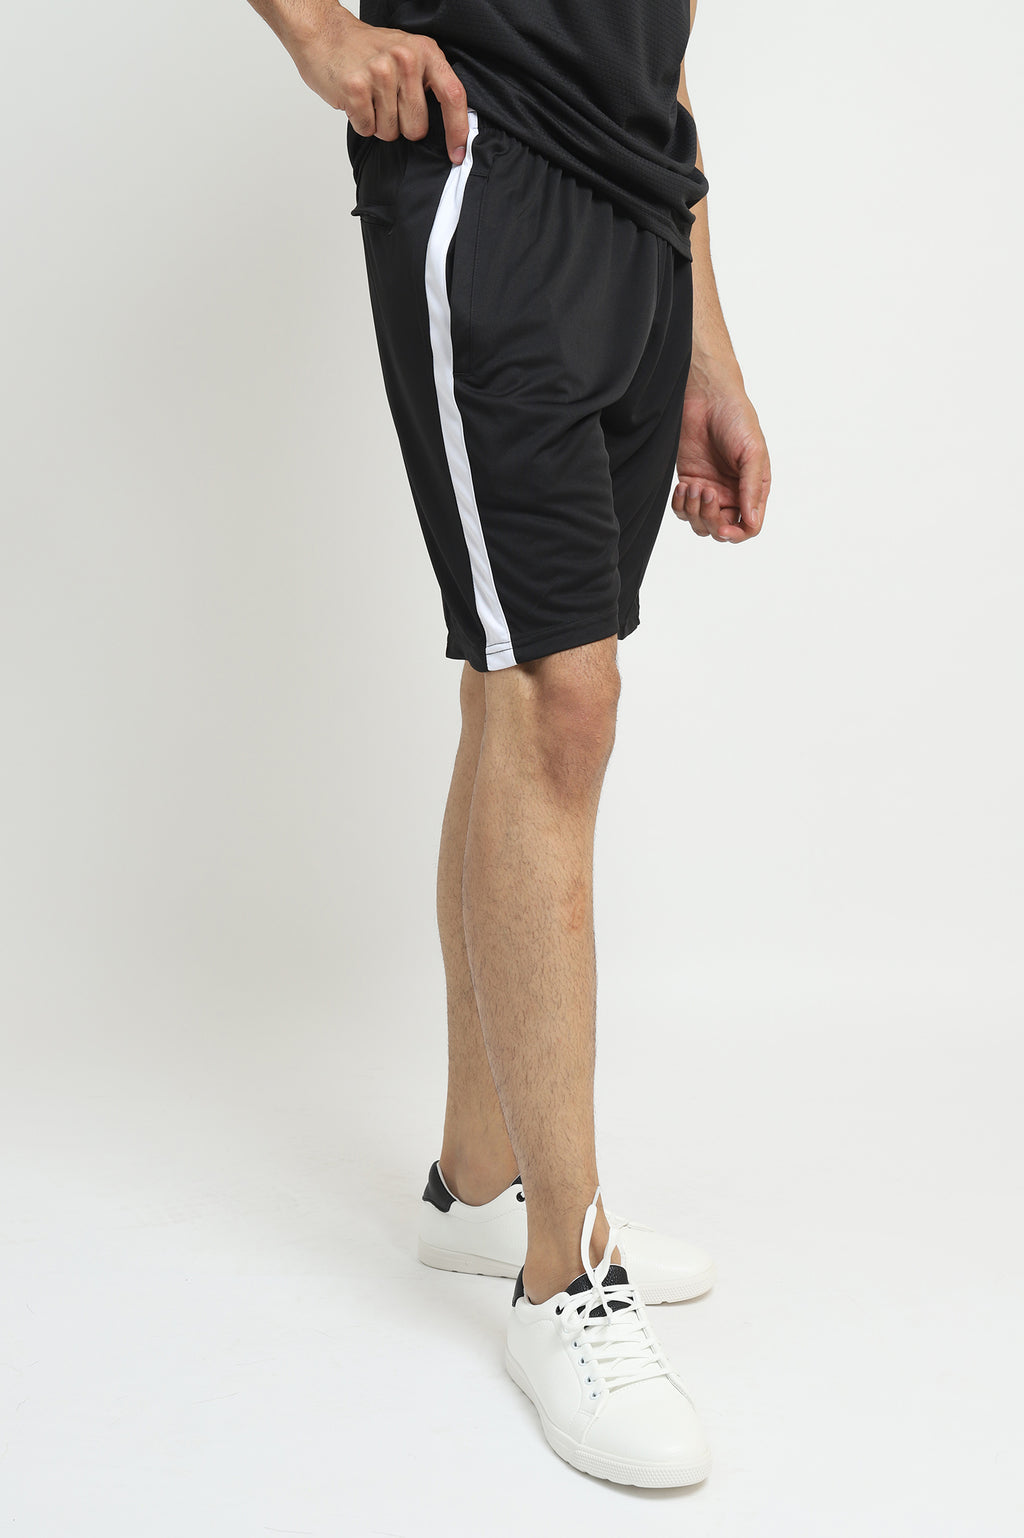 ALMASFIT CONTRAST SHORTS -BLACK/WHITE